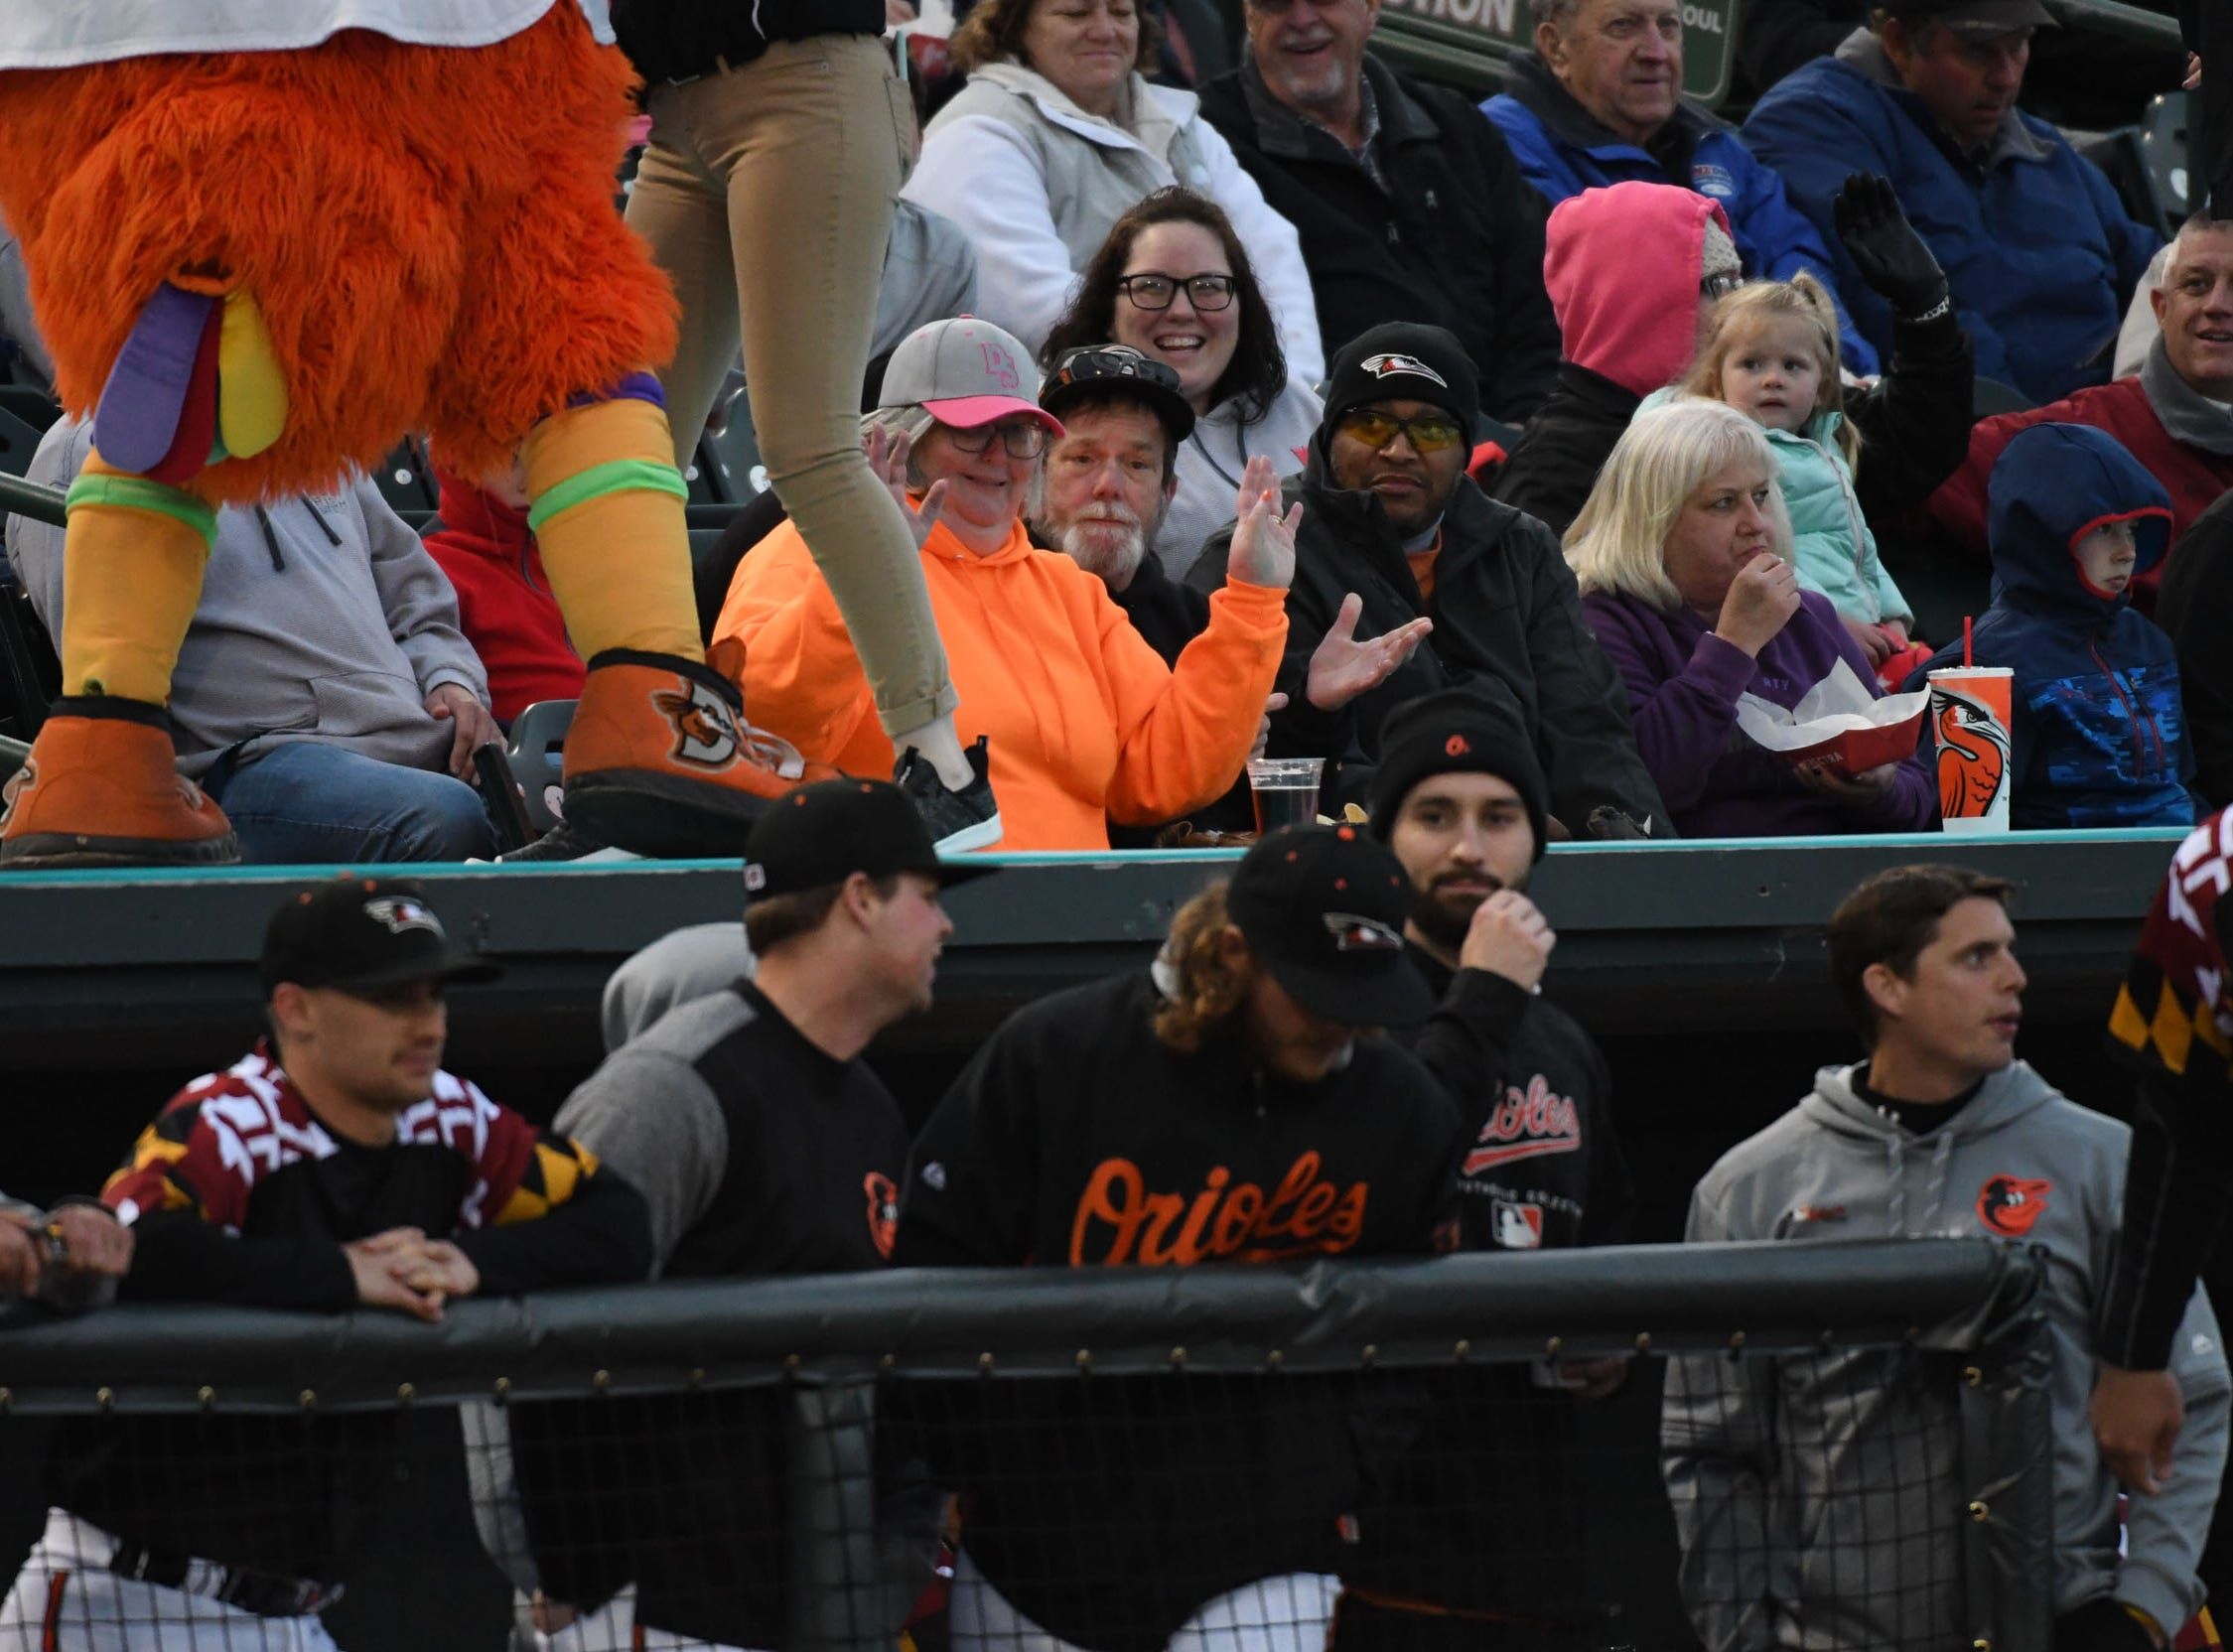 Fans are excited for the Delmarva Shorebirds opening night against the Wilmington Blue Claws on Thursday, April 11, 2019.